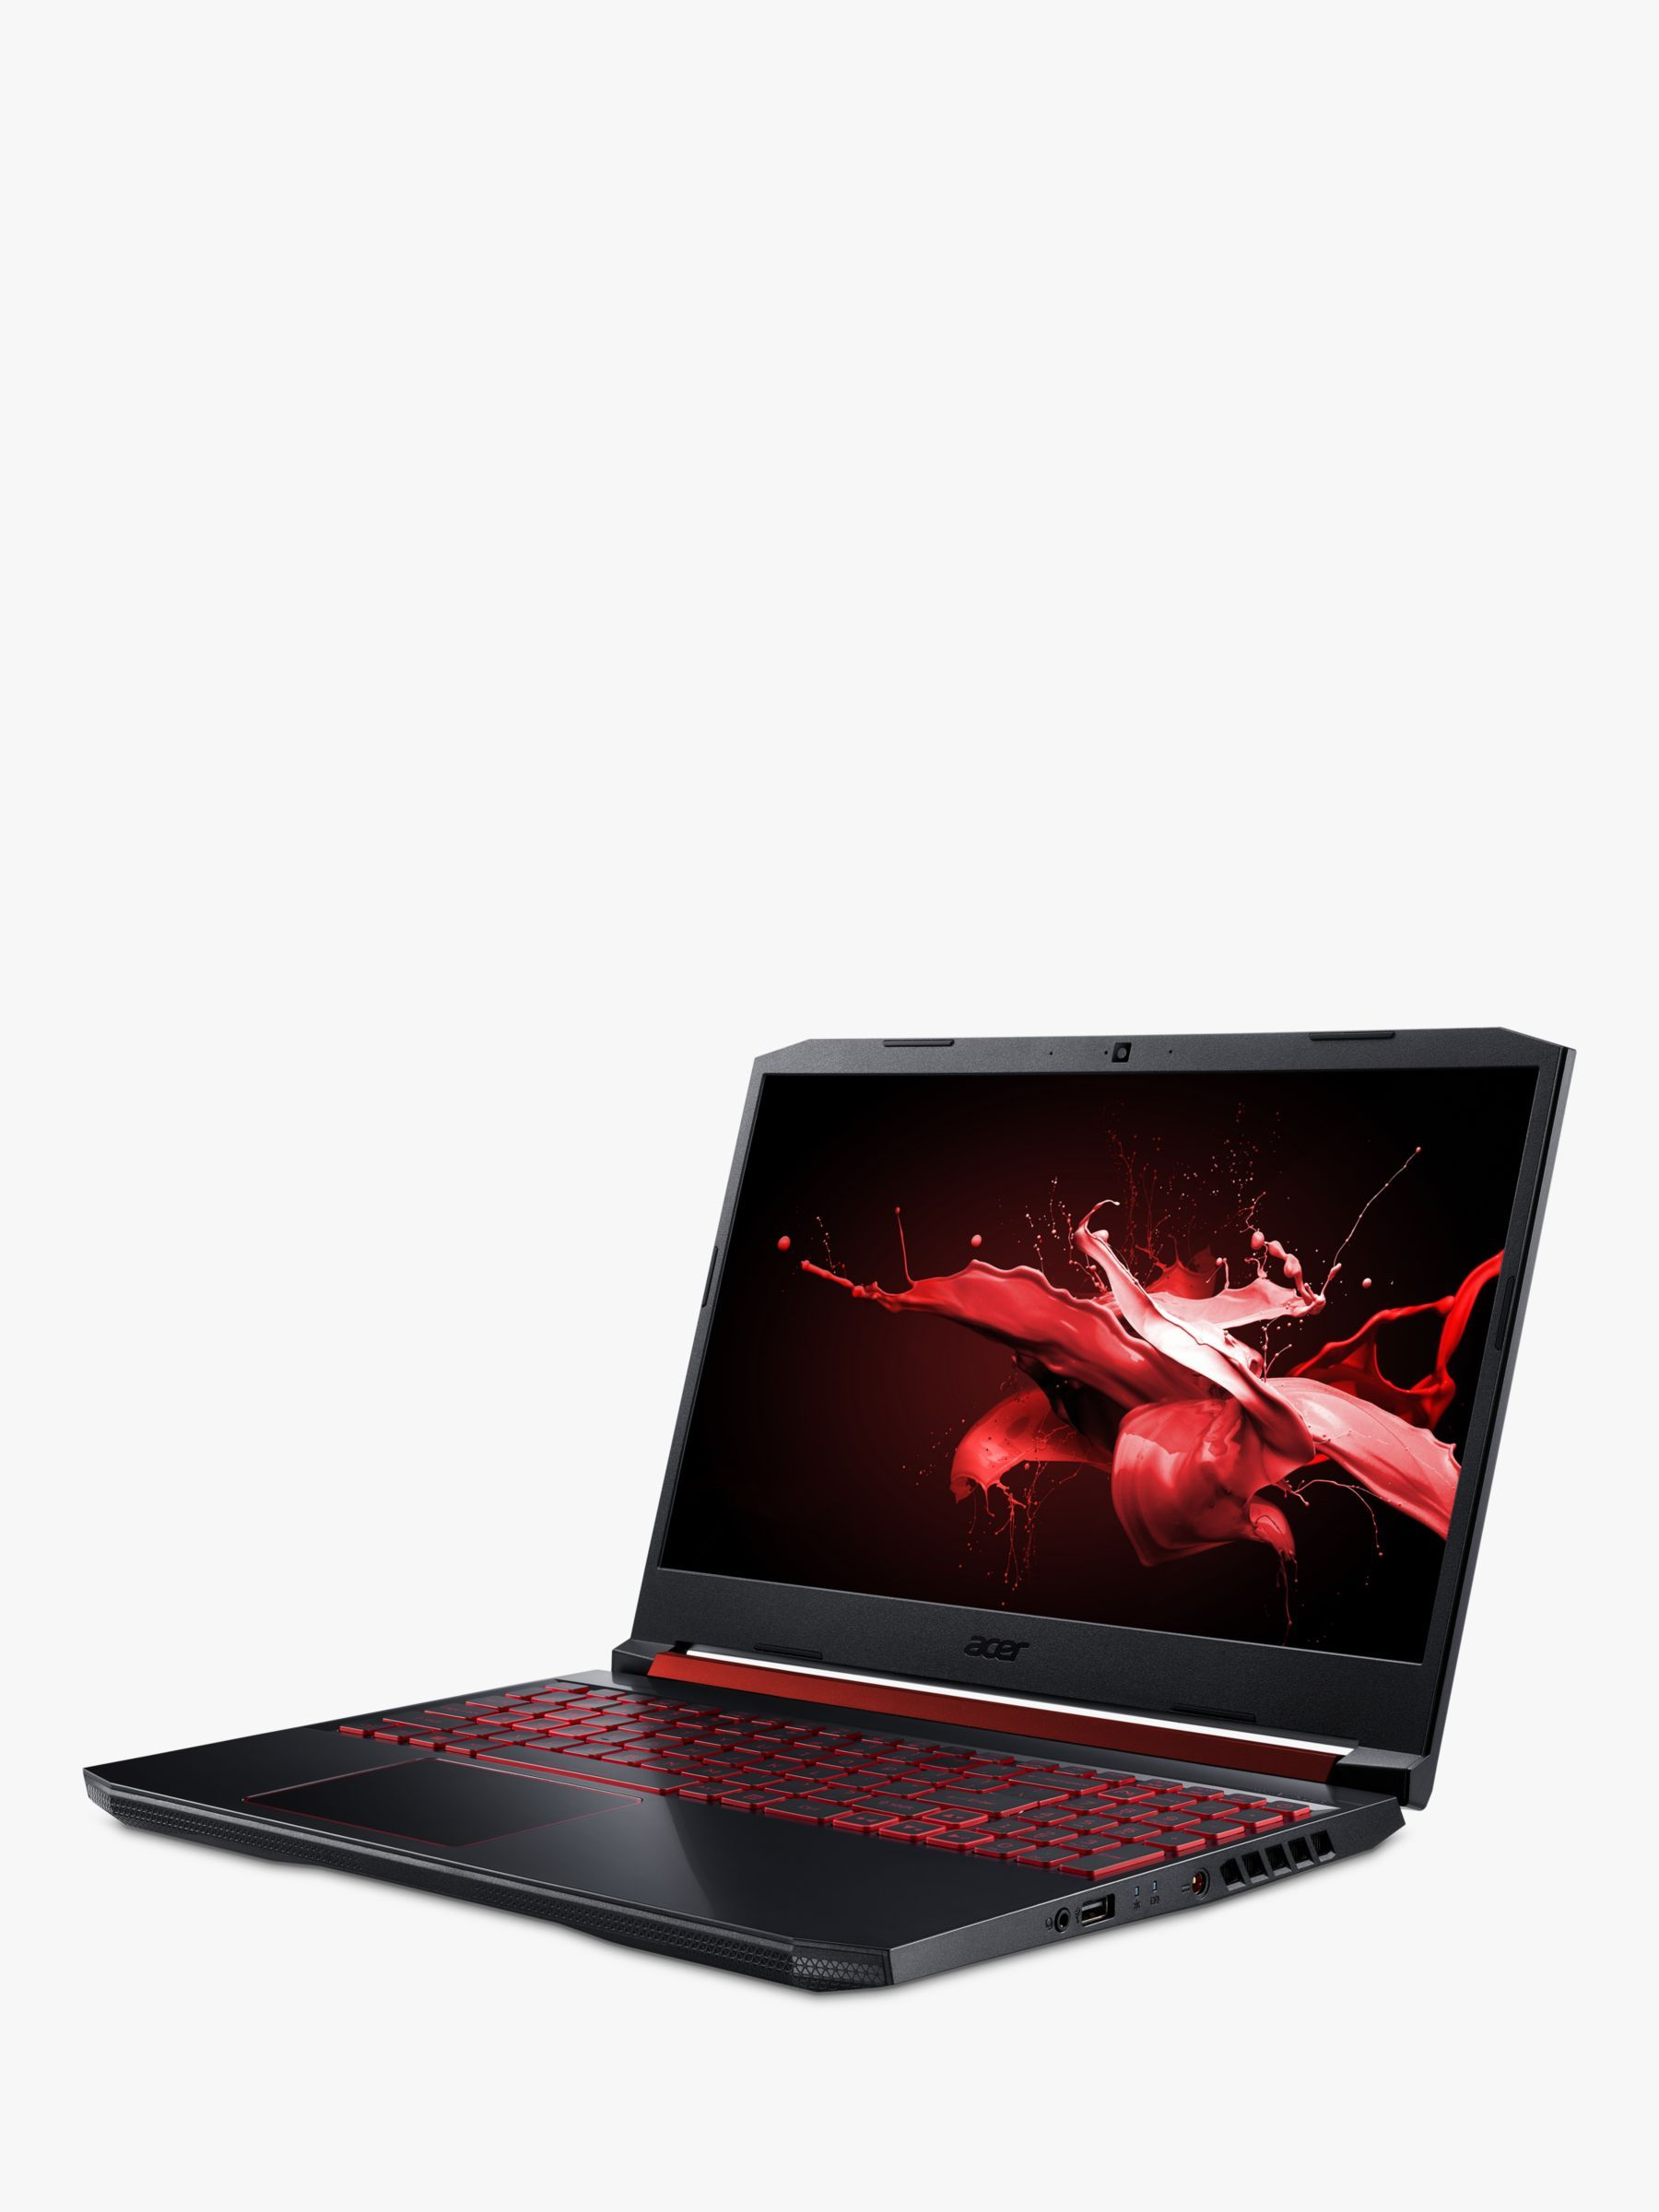 Acer Nitro 5 An515 43 Laptop Amd Ryzen 7 Processor 8gb Ram 1tb Hdd 256gb Ssd 15 6 Full Hd Black Hdd Tv Tuner Card New Laptops